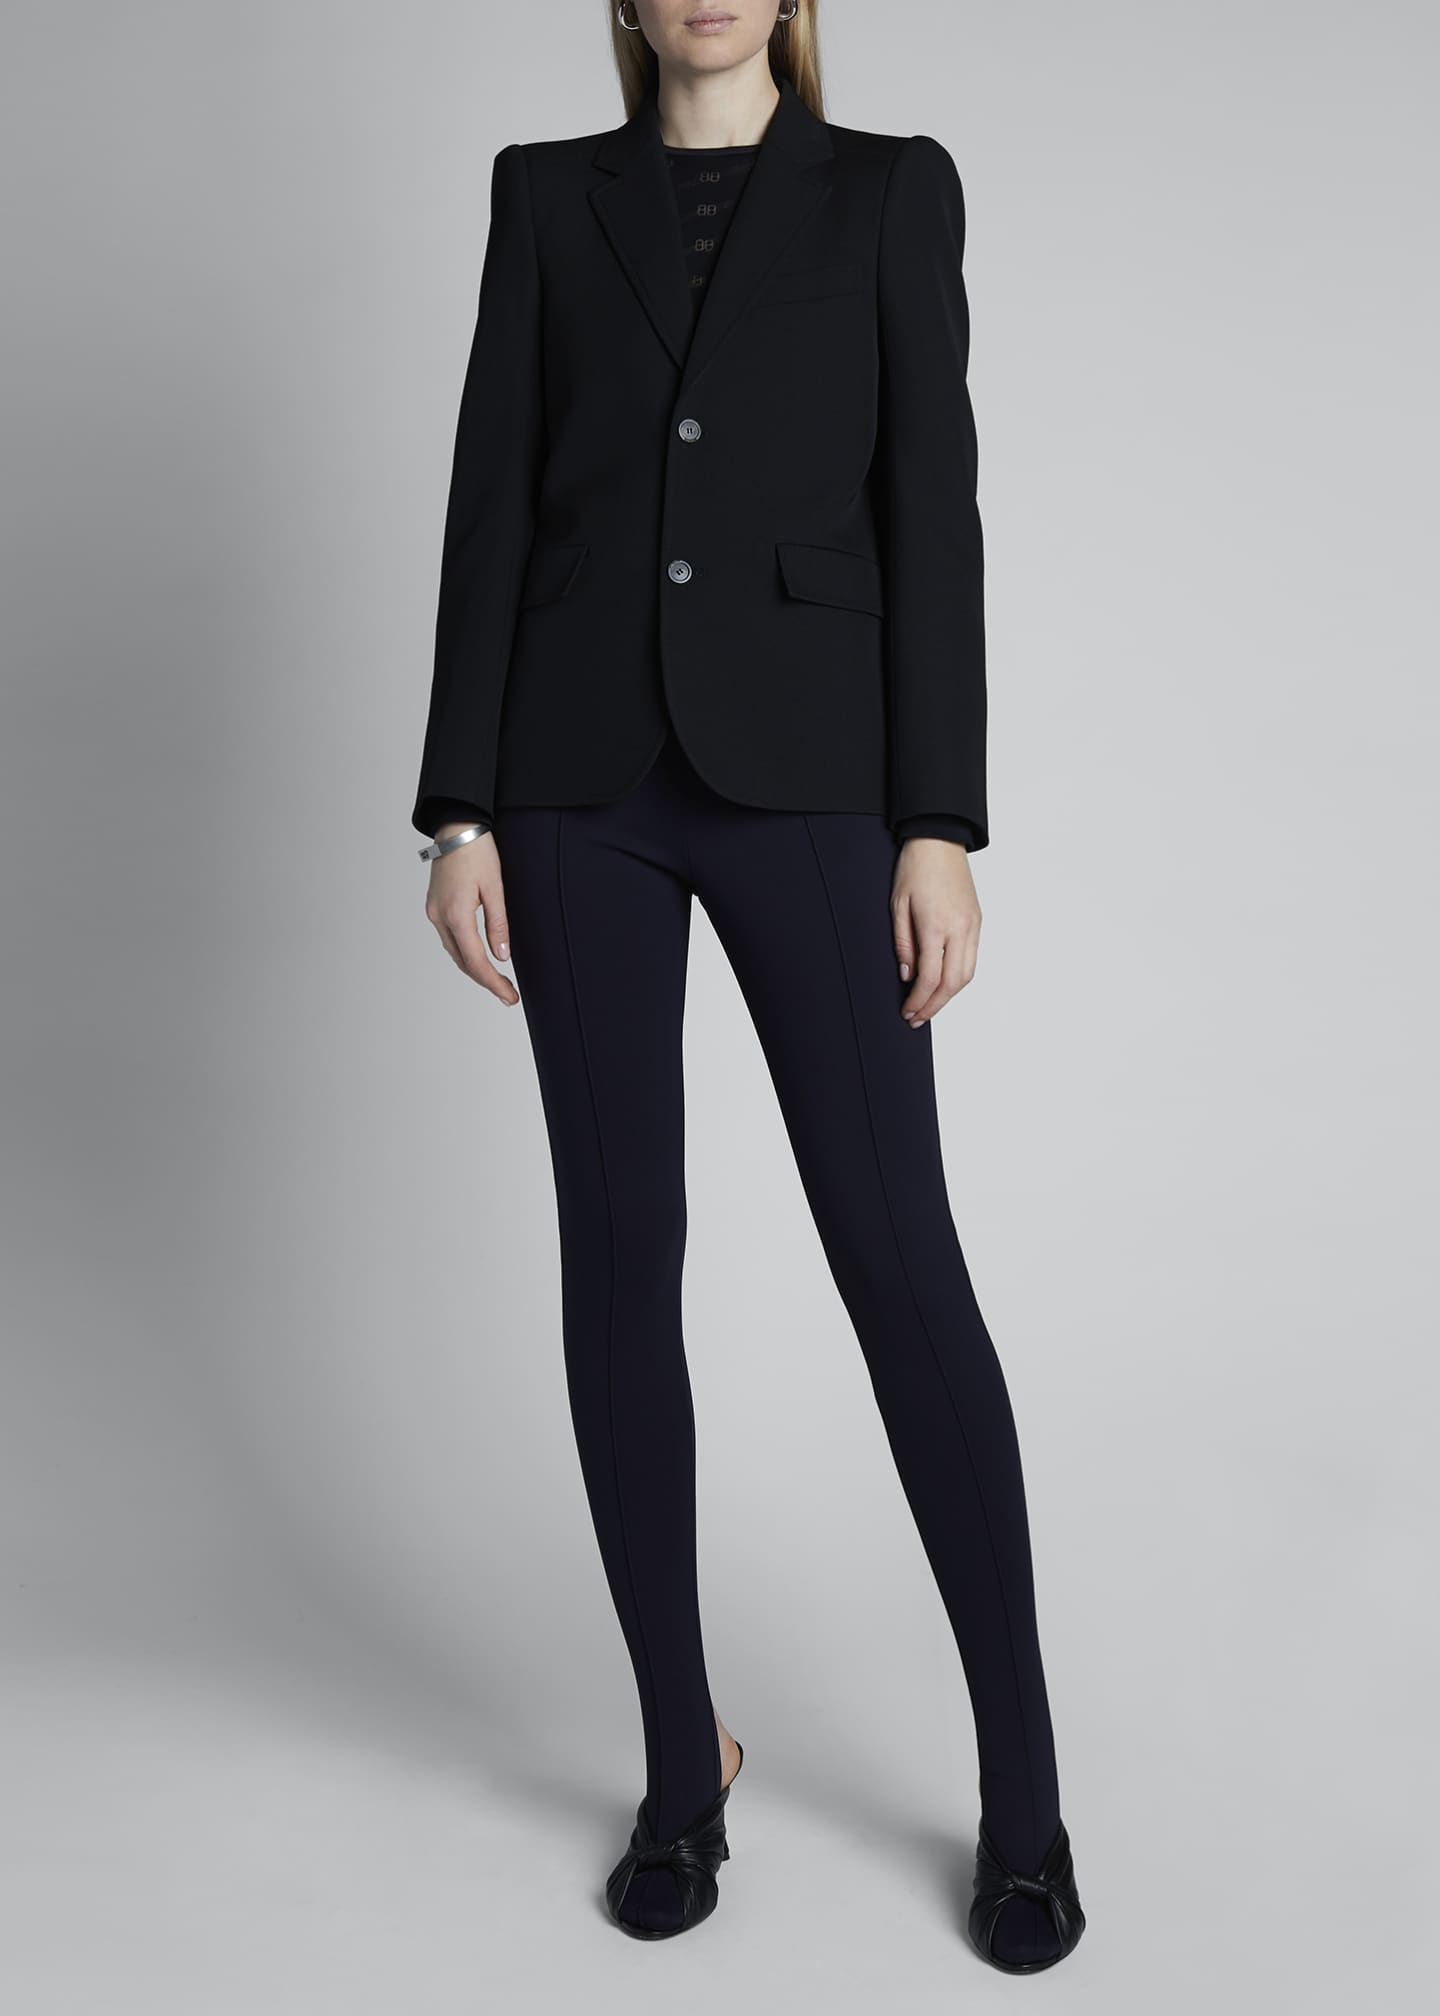 Image 1 of 3: Curved Shoulder Wool Jacket